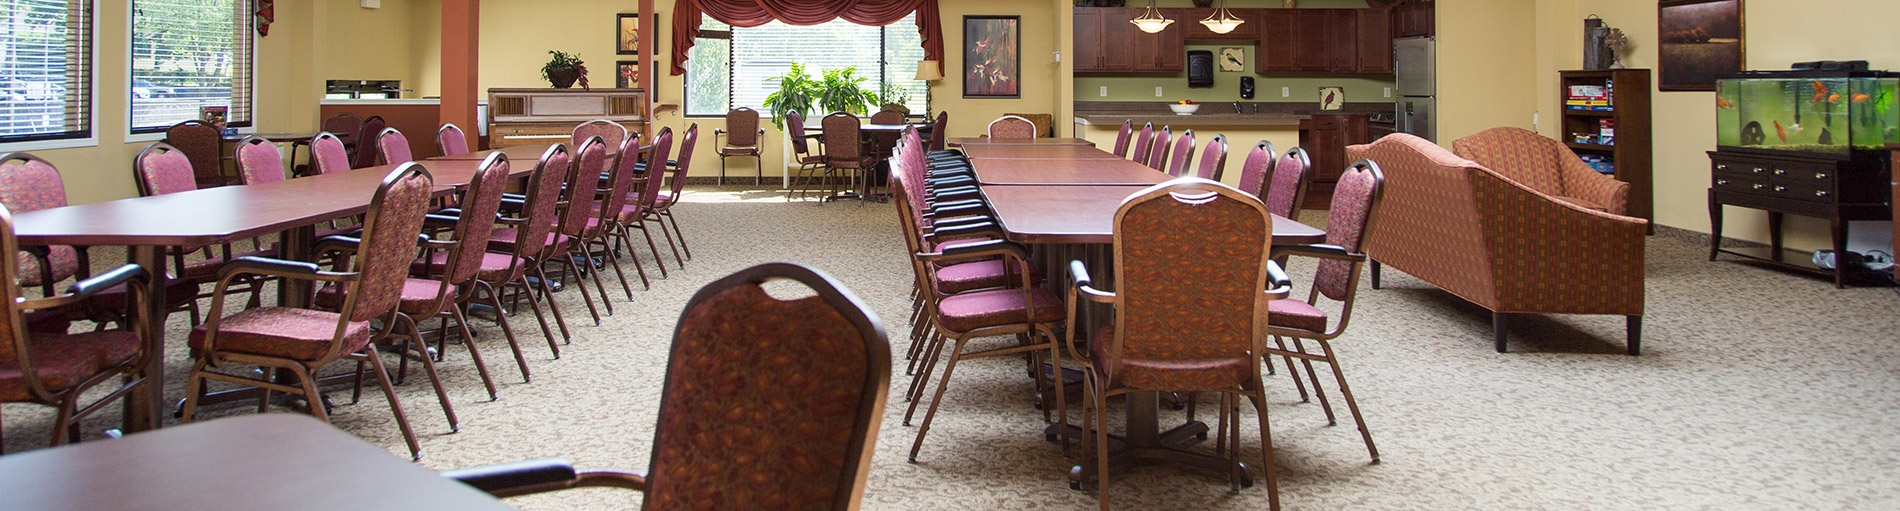 Senior Living Amenities and options